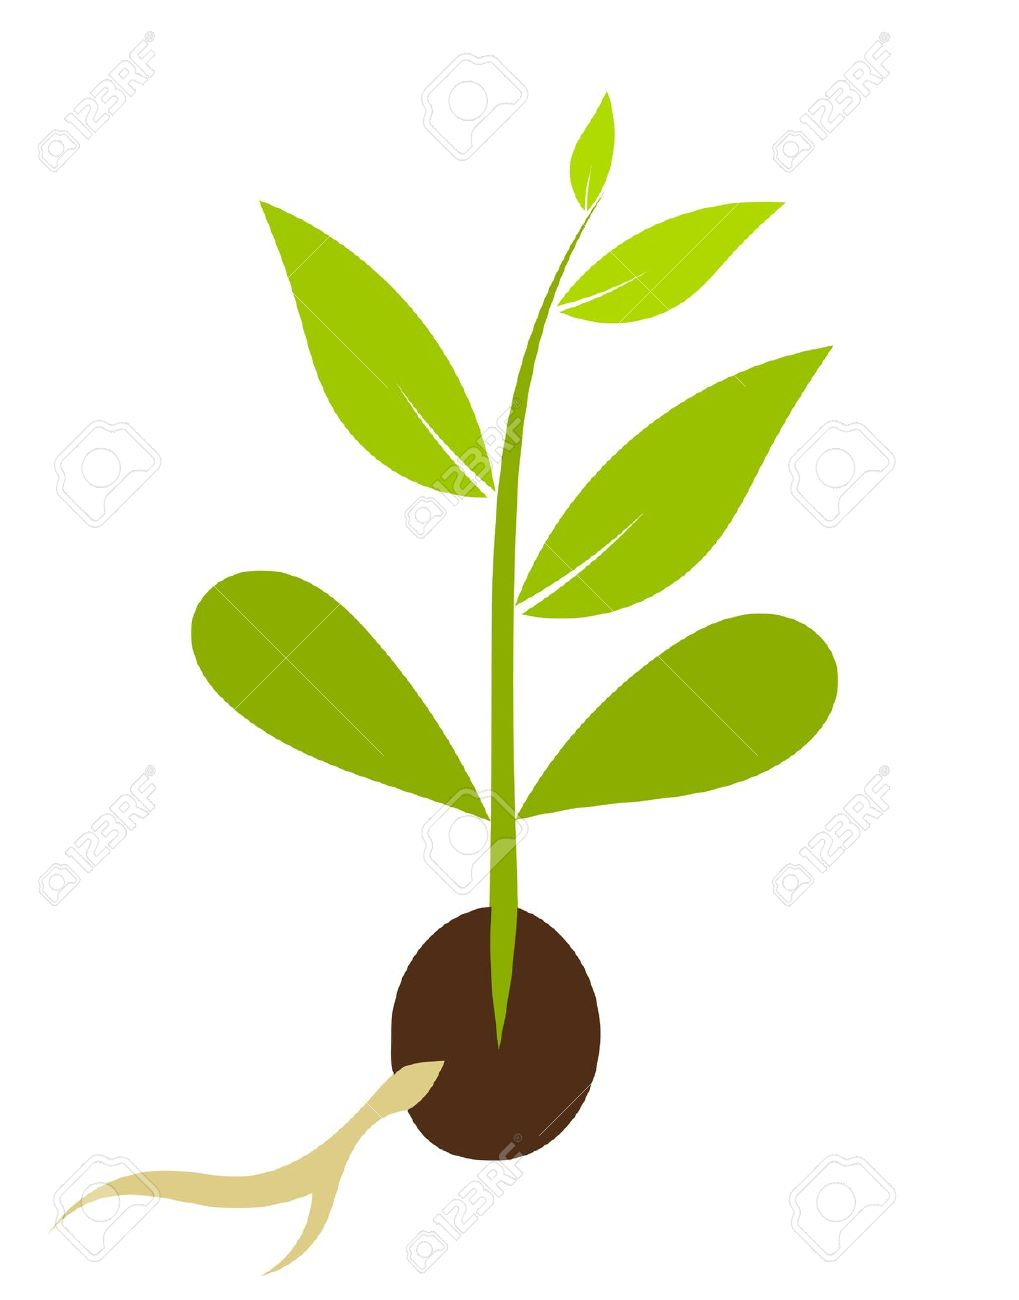 Tree seeds clipart - Clipground